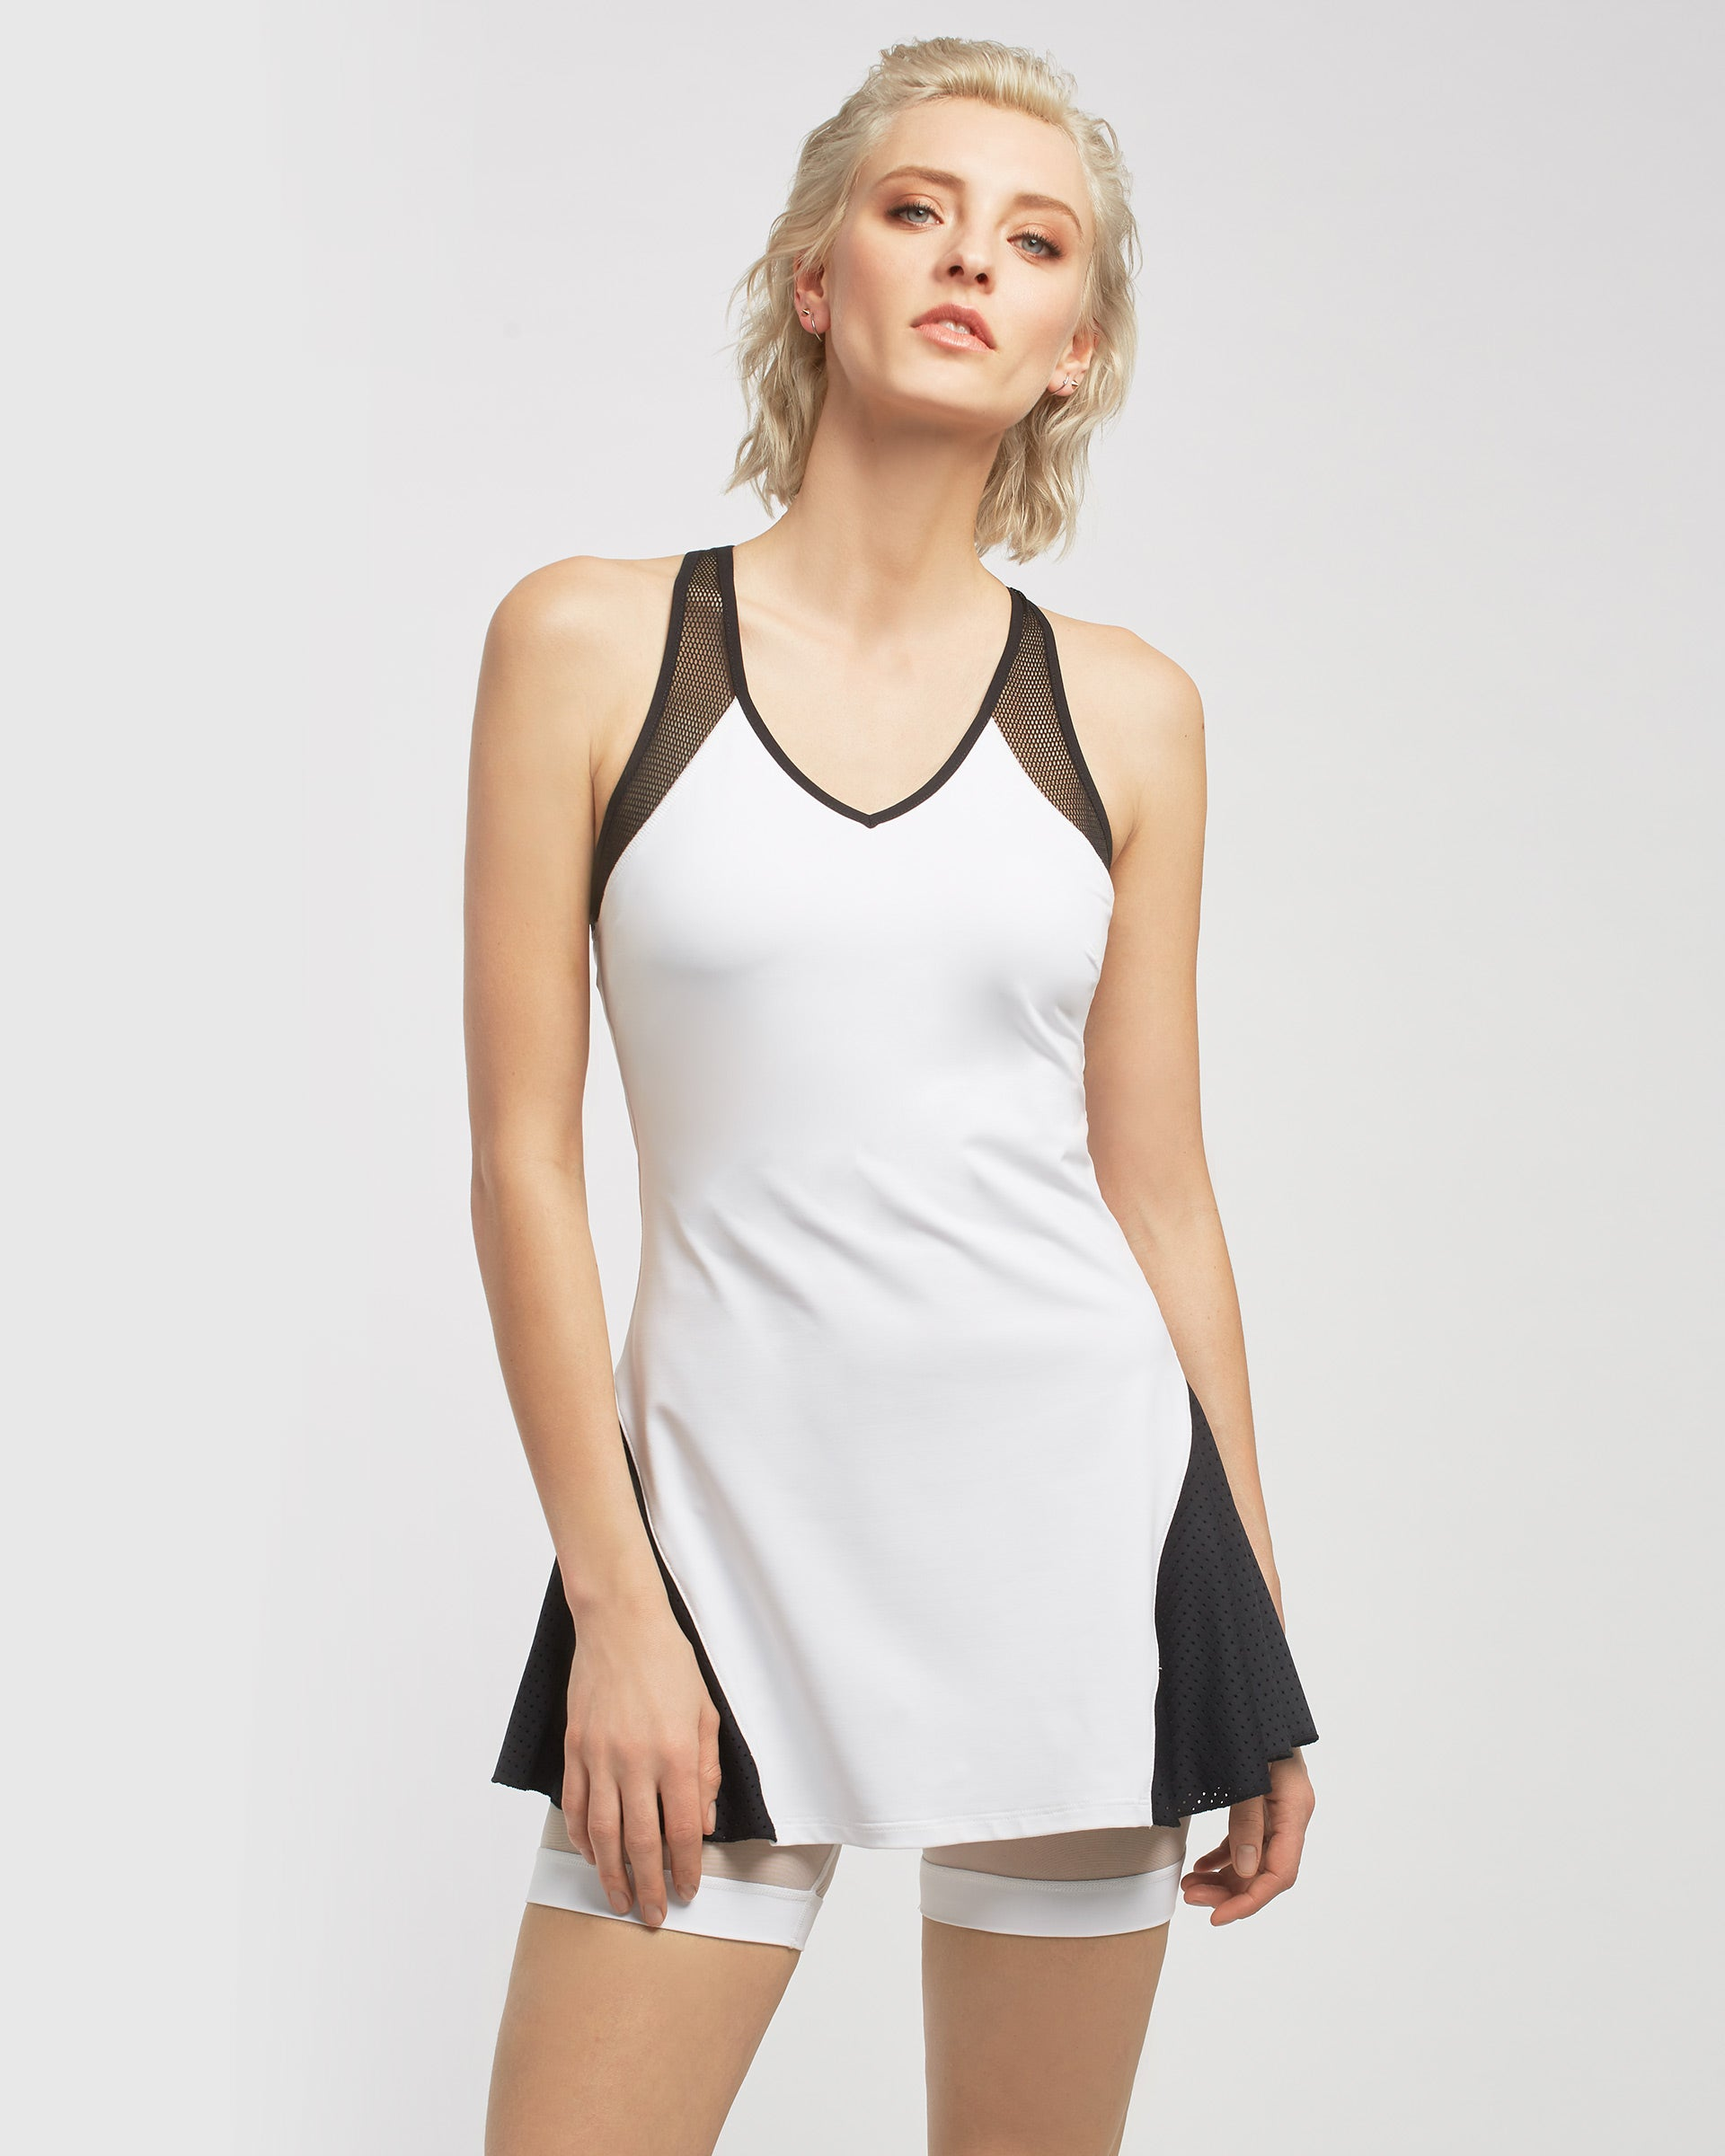 baseline-tennis-dress-white-black